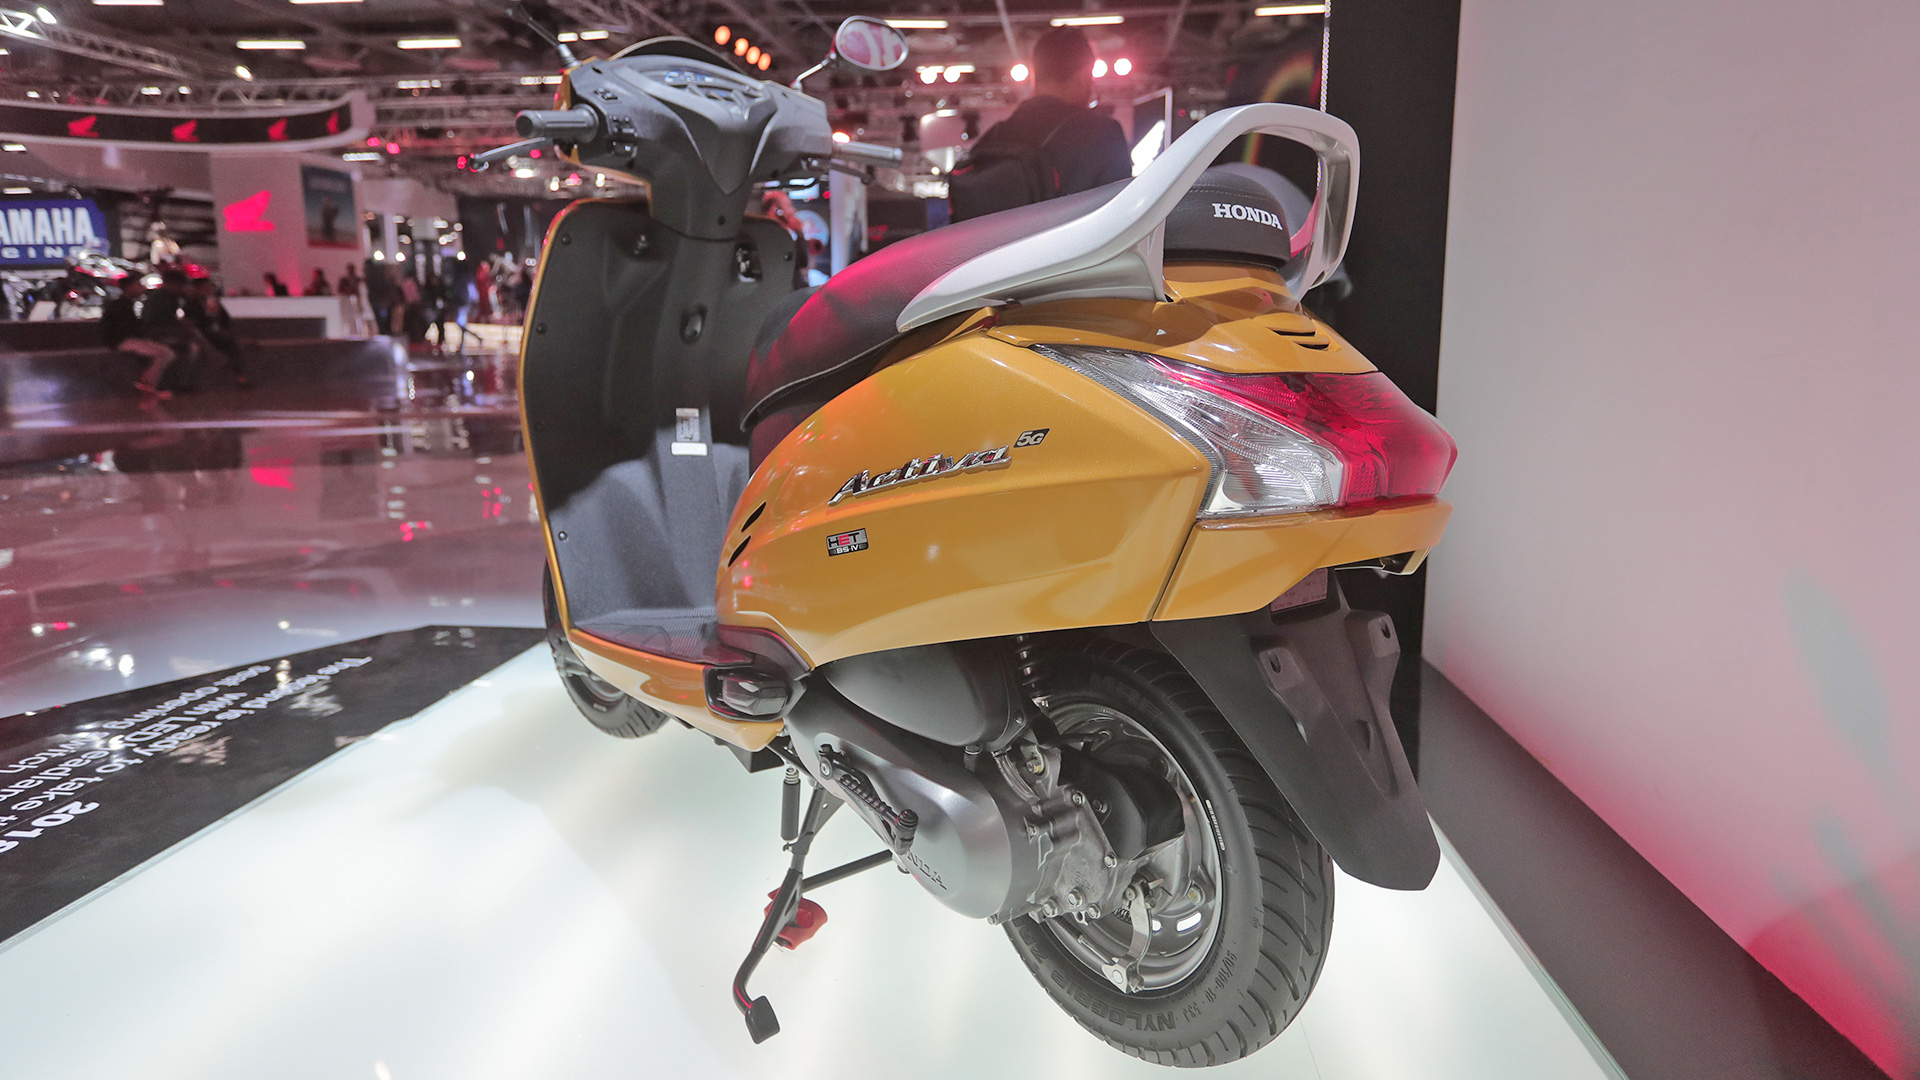 Honda Activa 5G 2018 DLX - Price, Mileage, Reviews, Specification, Gallery - Overdrive